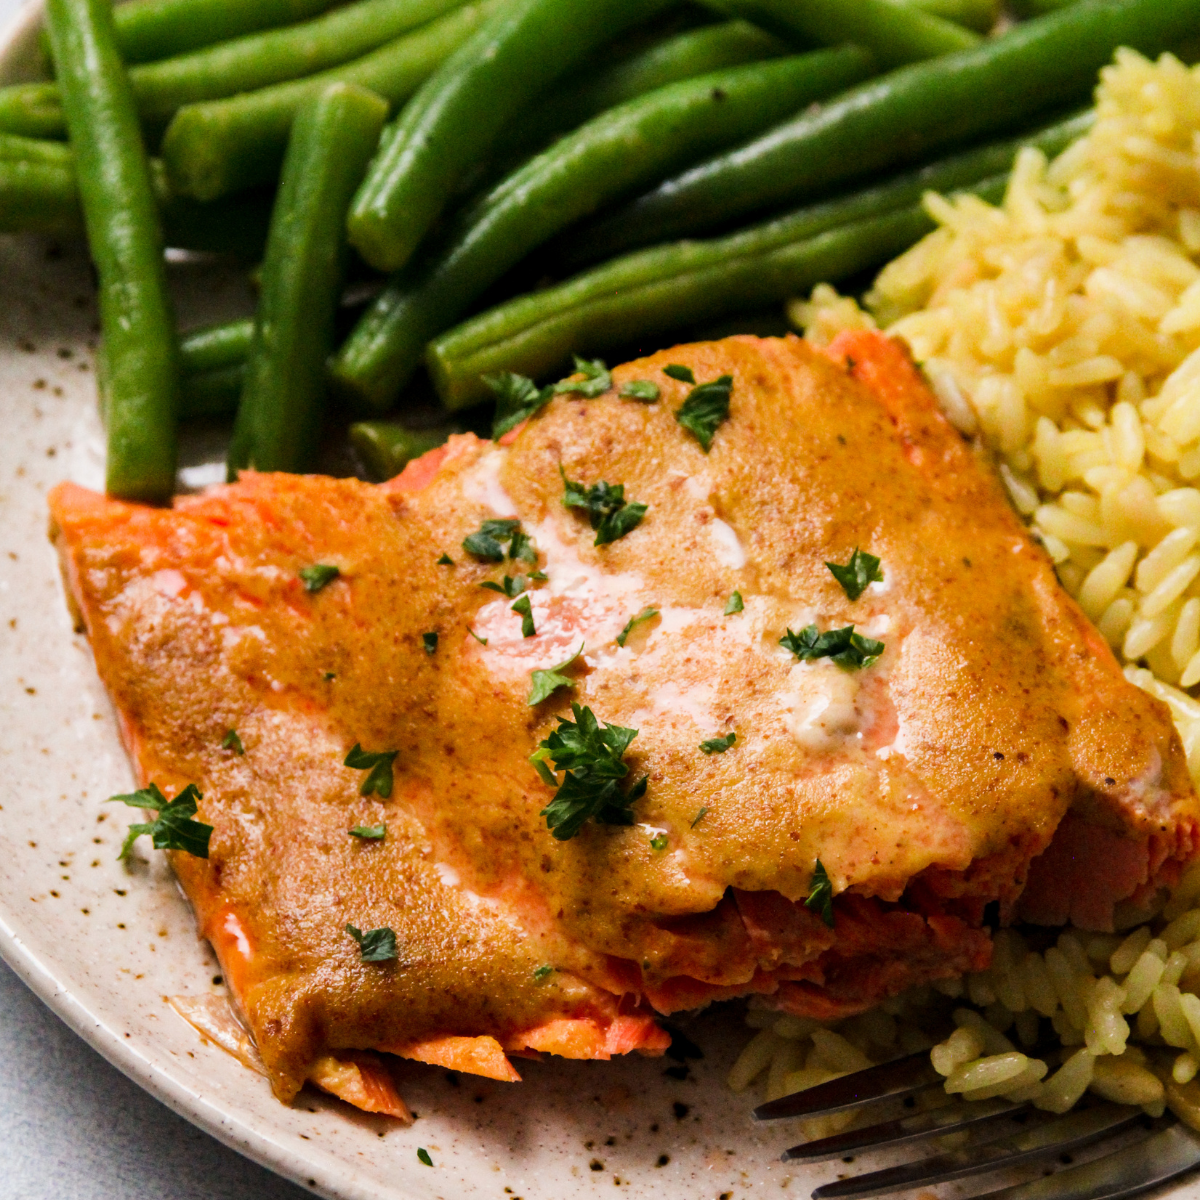 Salmon with mustard sauce and parsley on a tan plate.